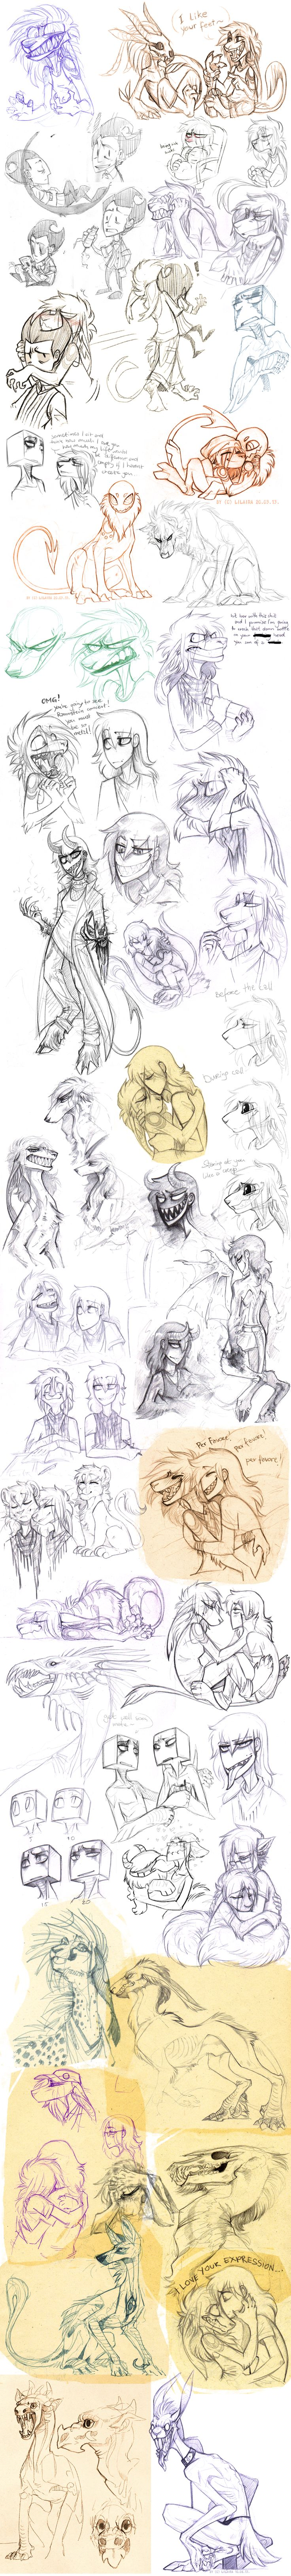 Sketch dump 48 by LiLaiRa on DeviantArt